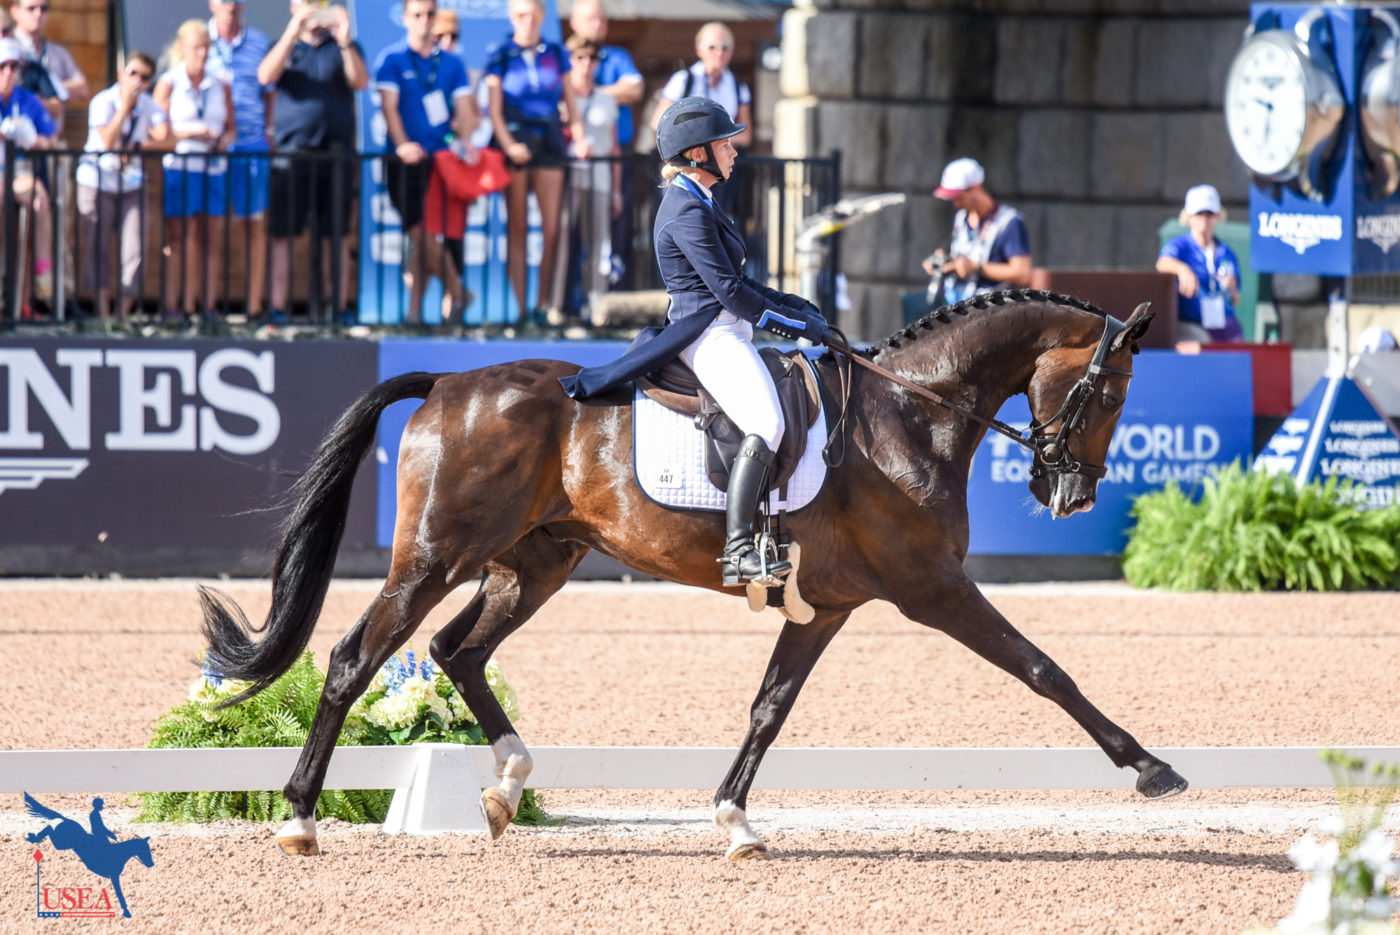 56th - Pauliina Swindells and Ferro S (FIN)